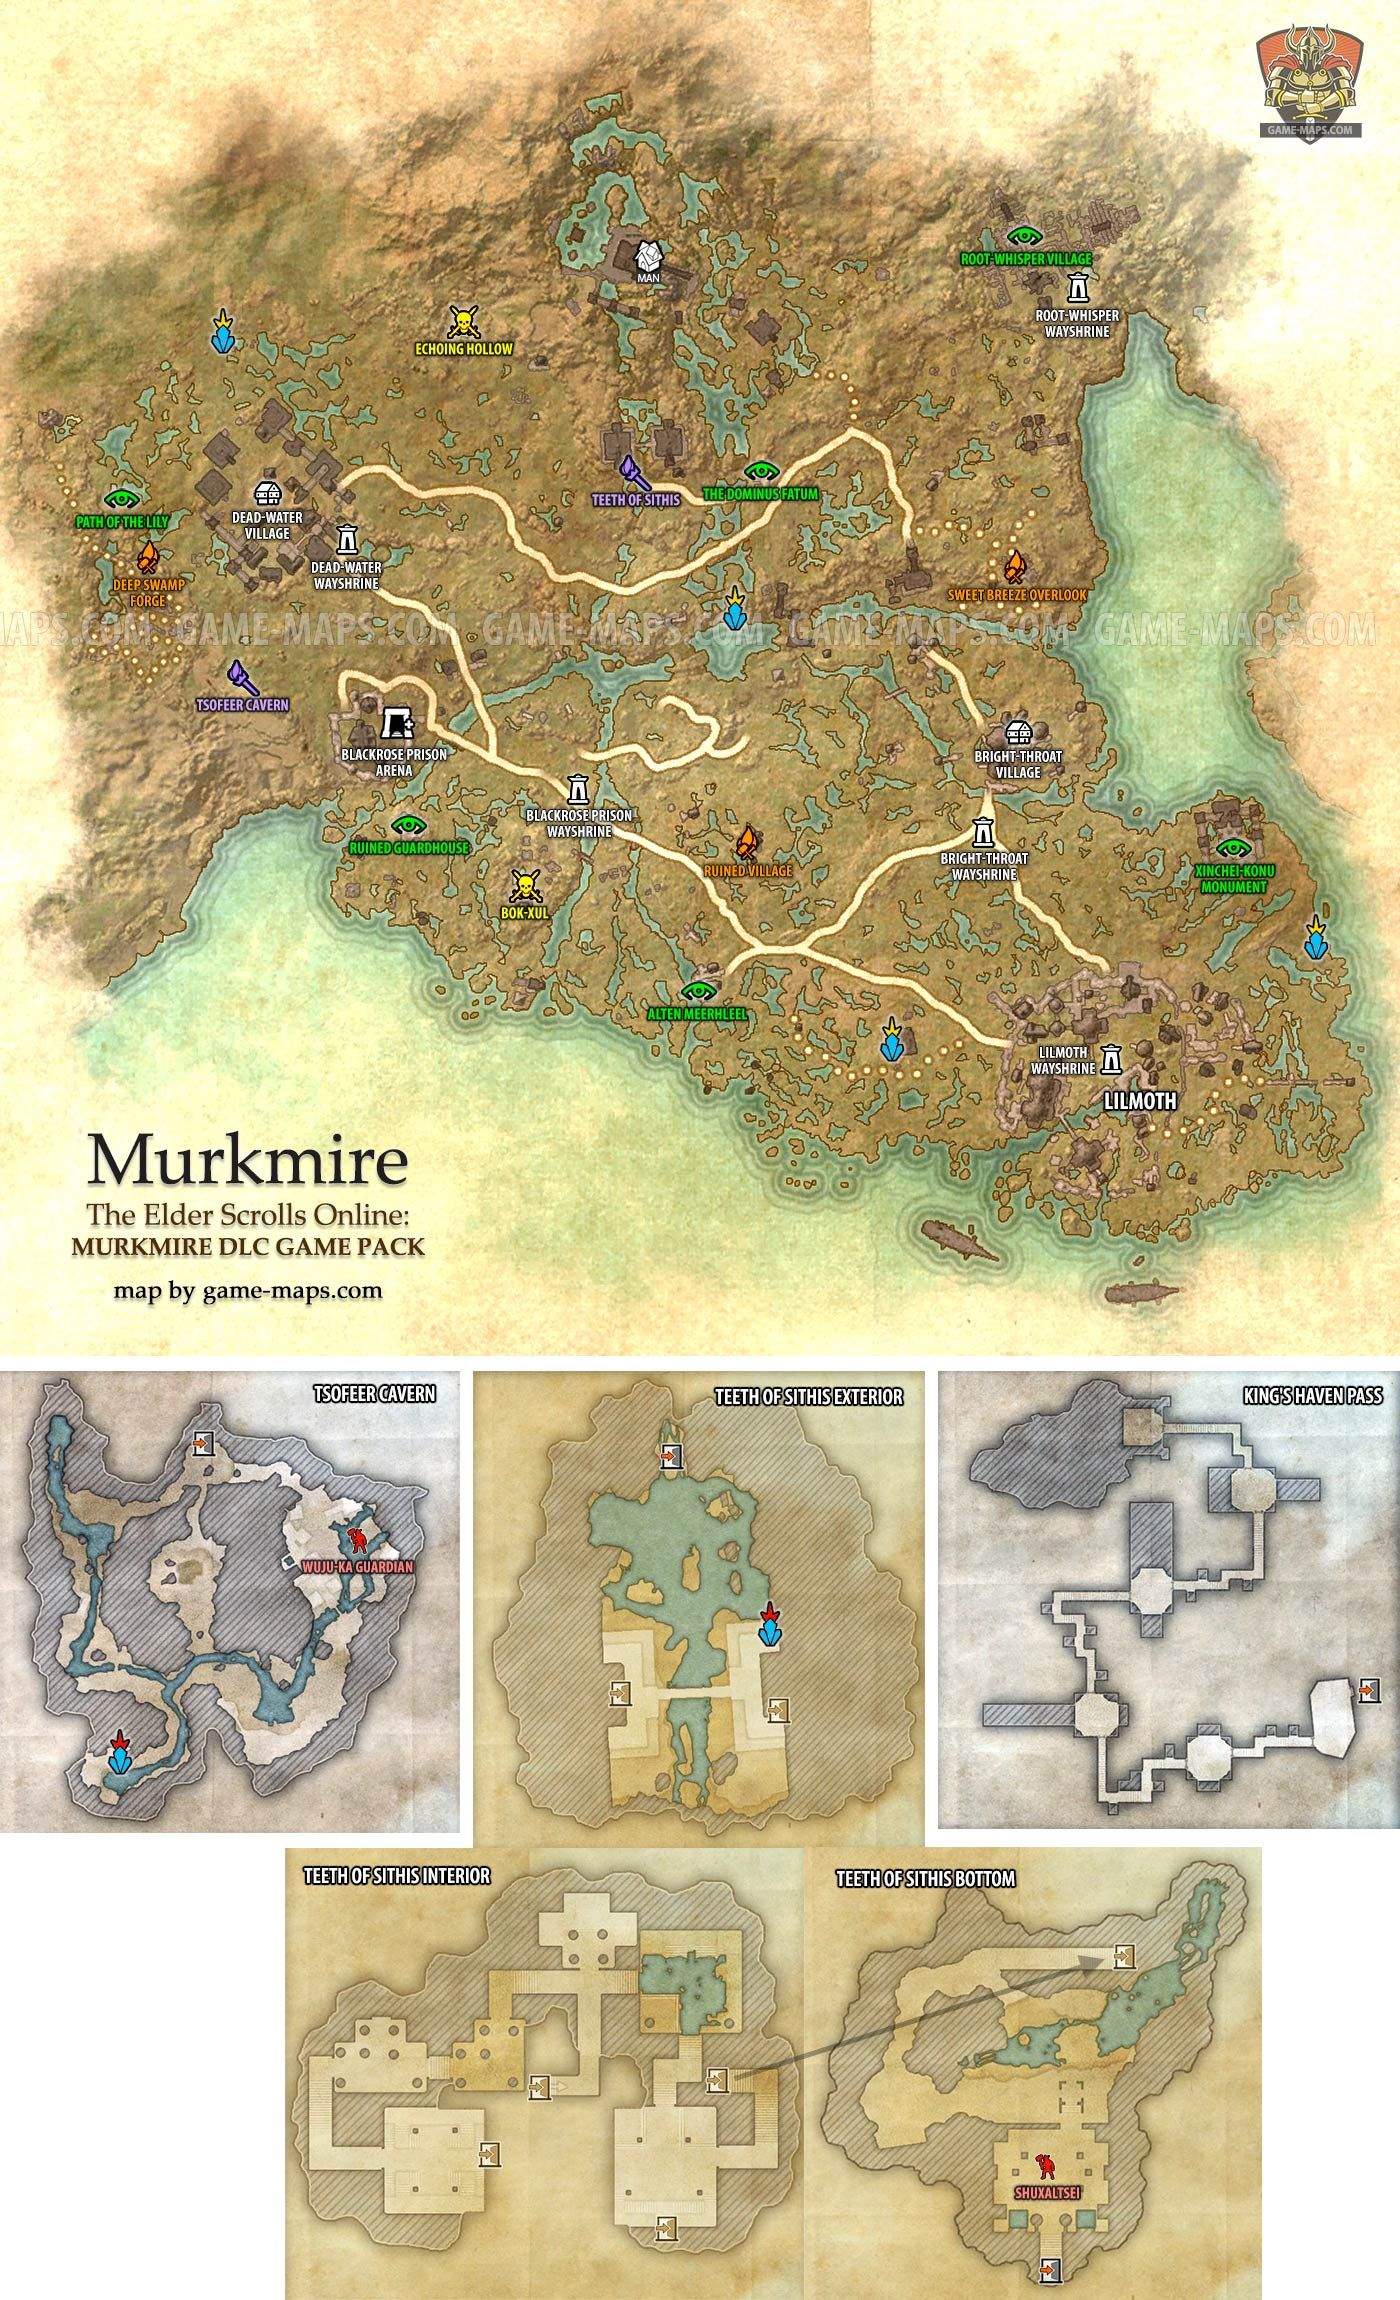 Malabal Tor Map : malabal, Murkmire, Elder, Scrolls, Online:, Maps,, Guides, Walkthroughs., Online,, Scrolls,